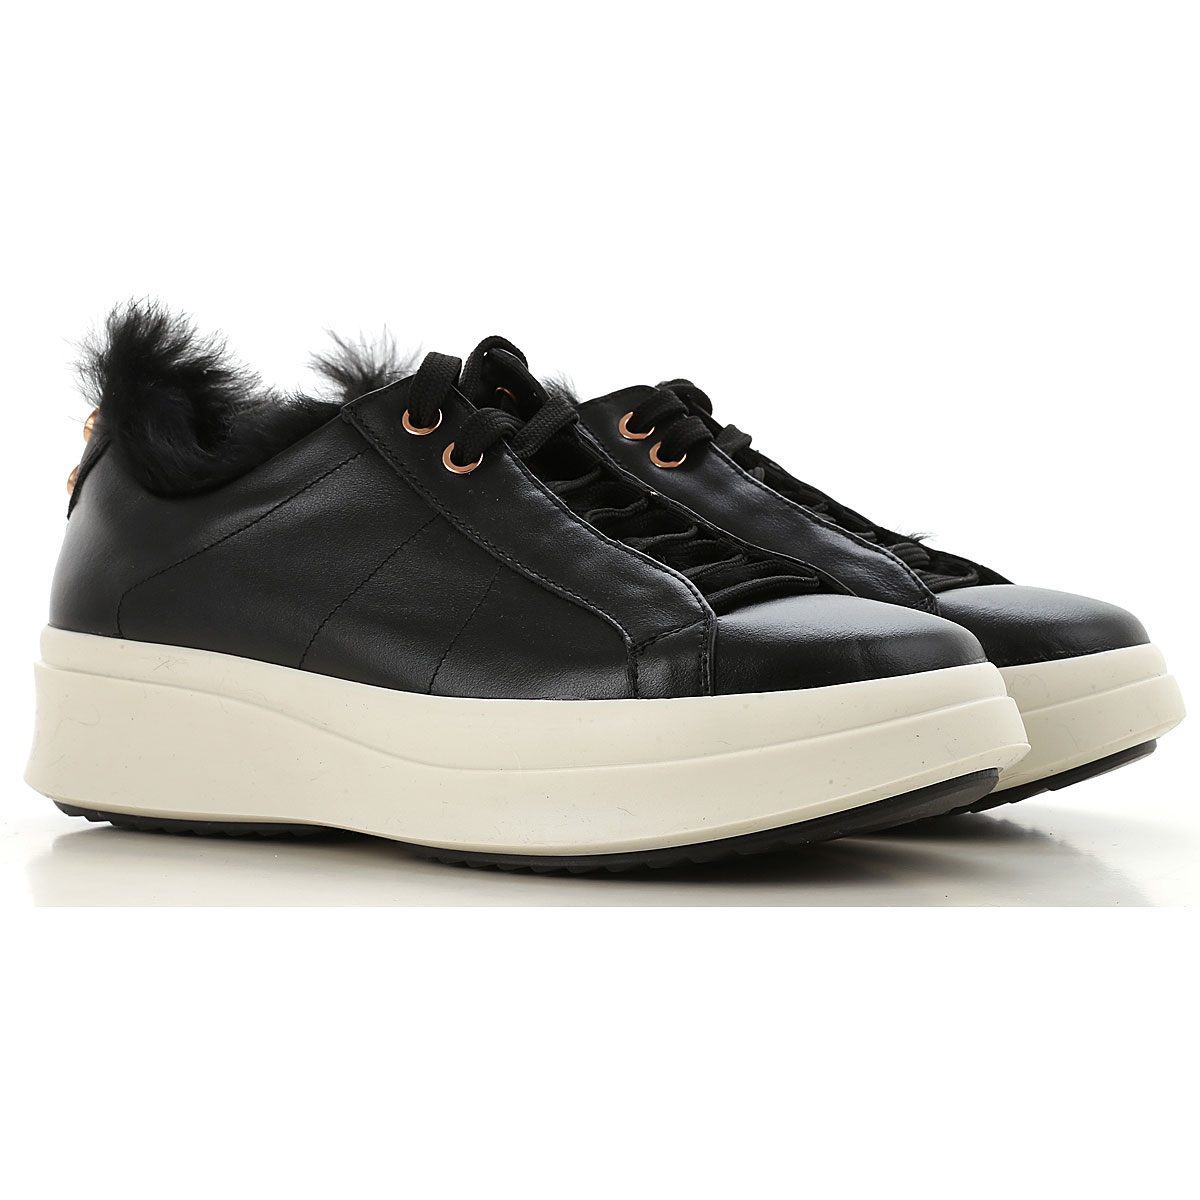 Image of Alexander Smith Sneakers for Women, Black, Leather, 2017, 6 7 8 9